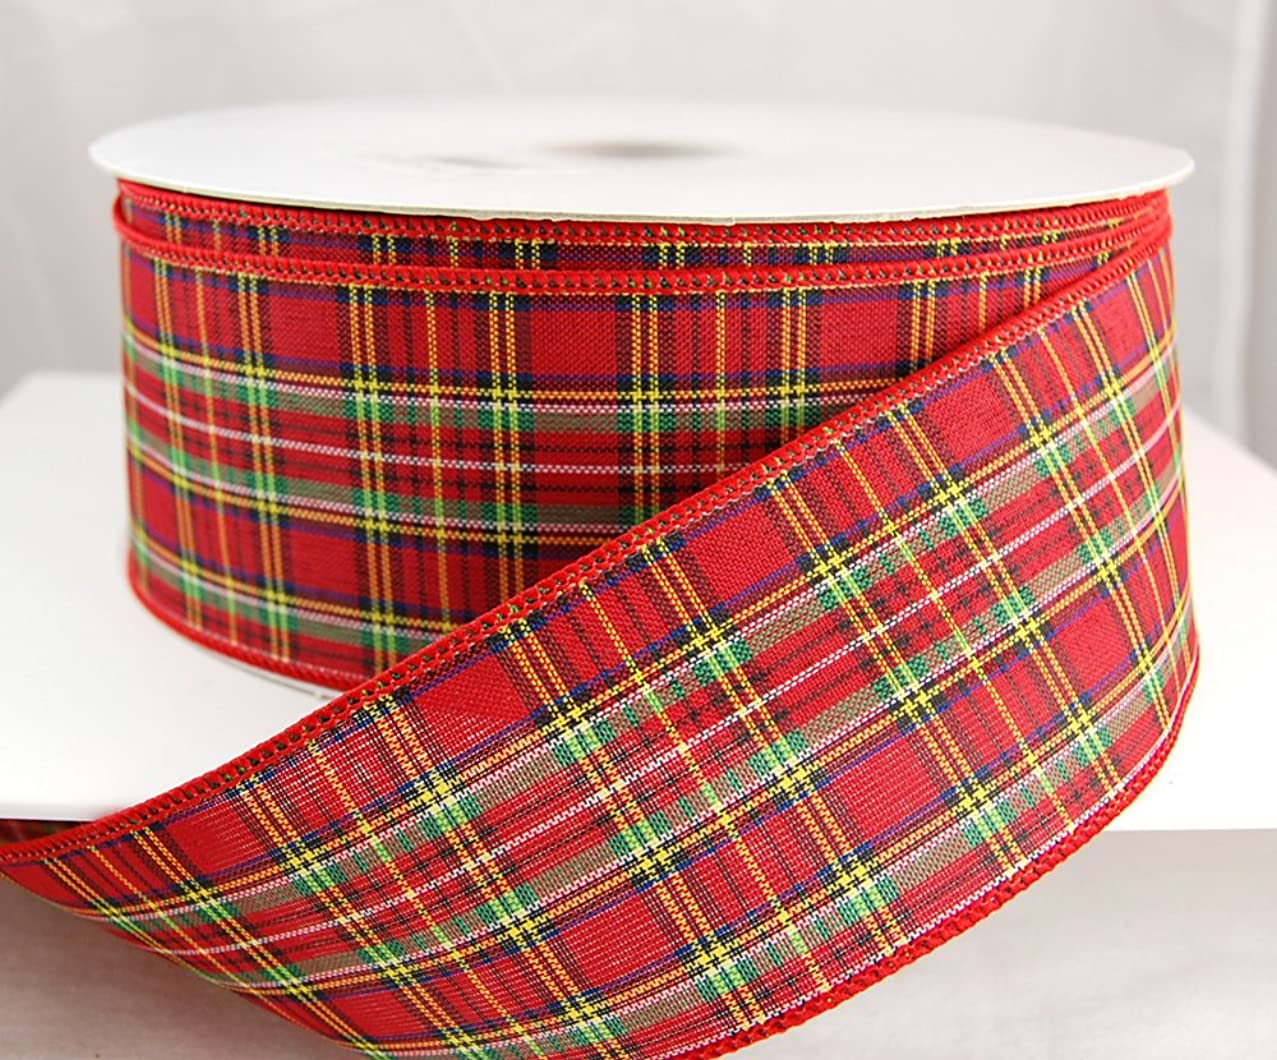 Reliant Ribbon 92300W-001-40K Tradition Plaid Value Wired Edge Ribbon, 2-1/2 Inch X 50 Yards, Multi